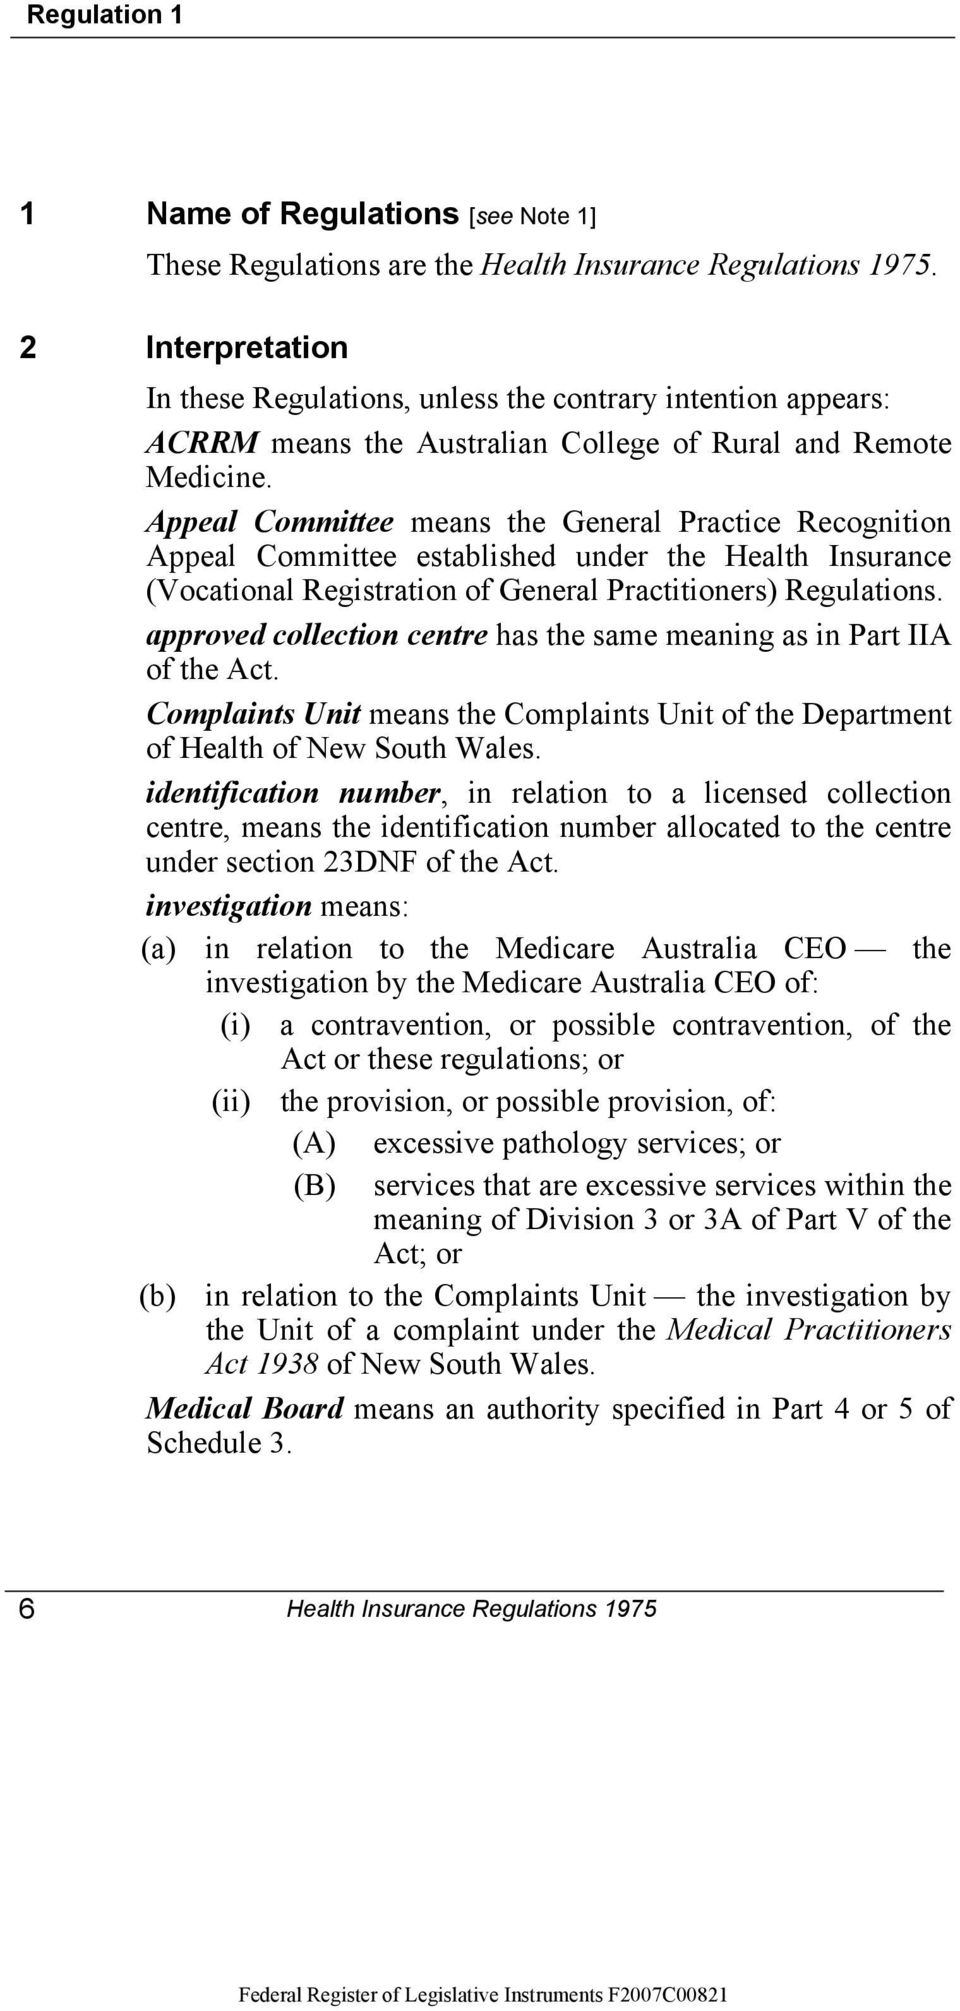 Appeal Committee means the General Practice Recognition Appeal Committee established under the Health Insurance (Vocational Registration of General Practitioners) Regulations.